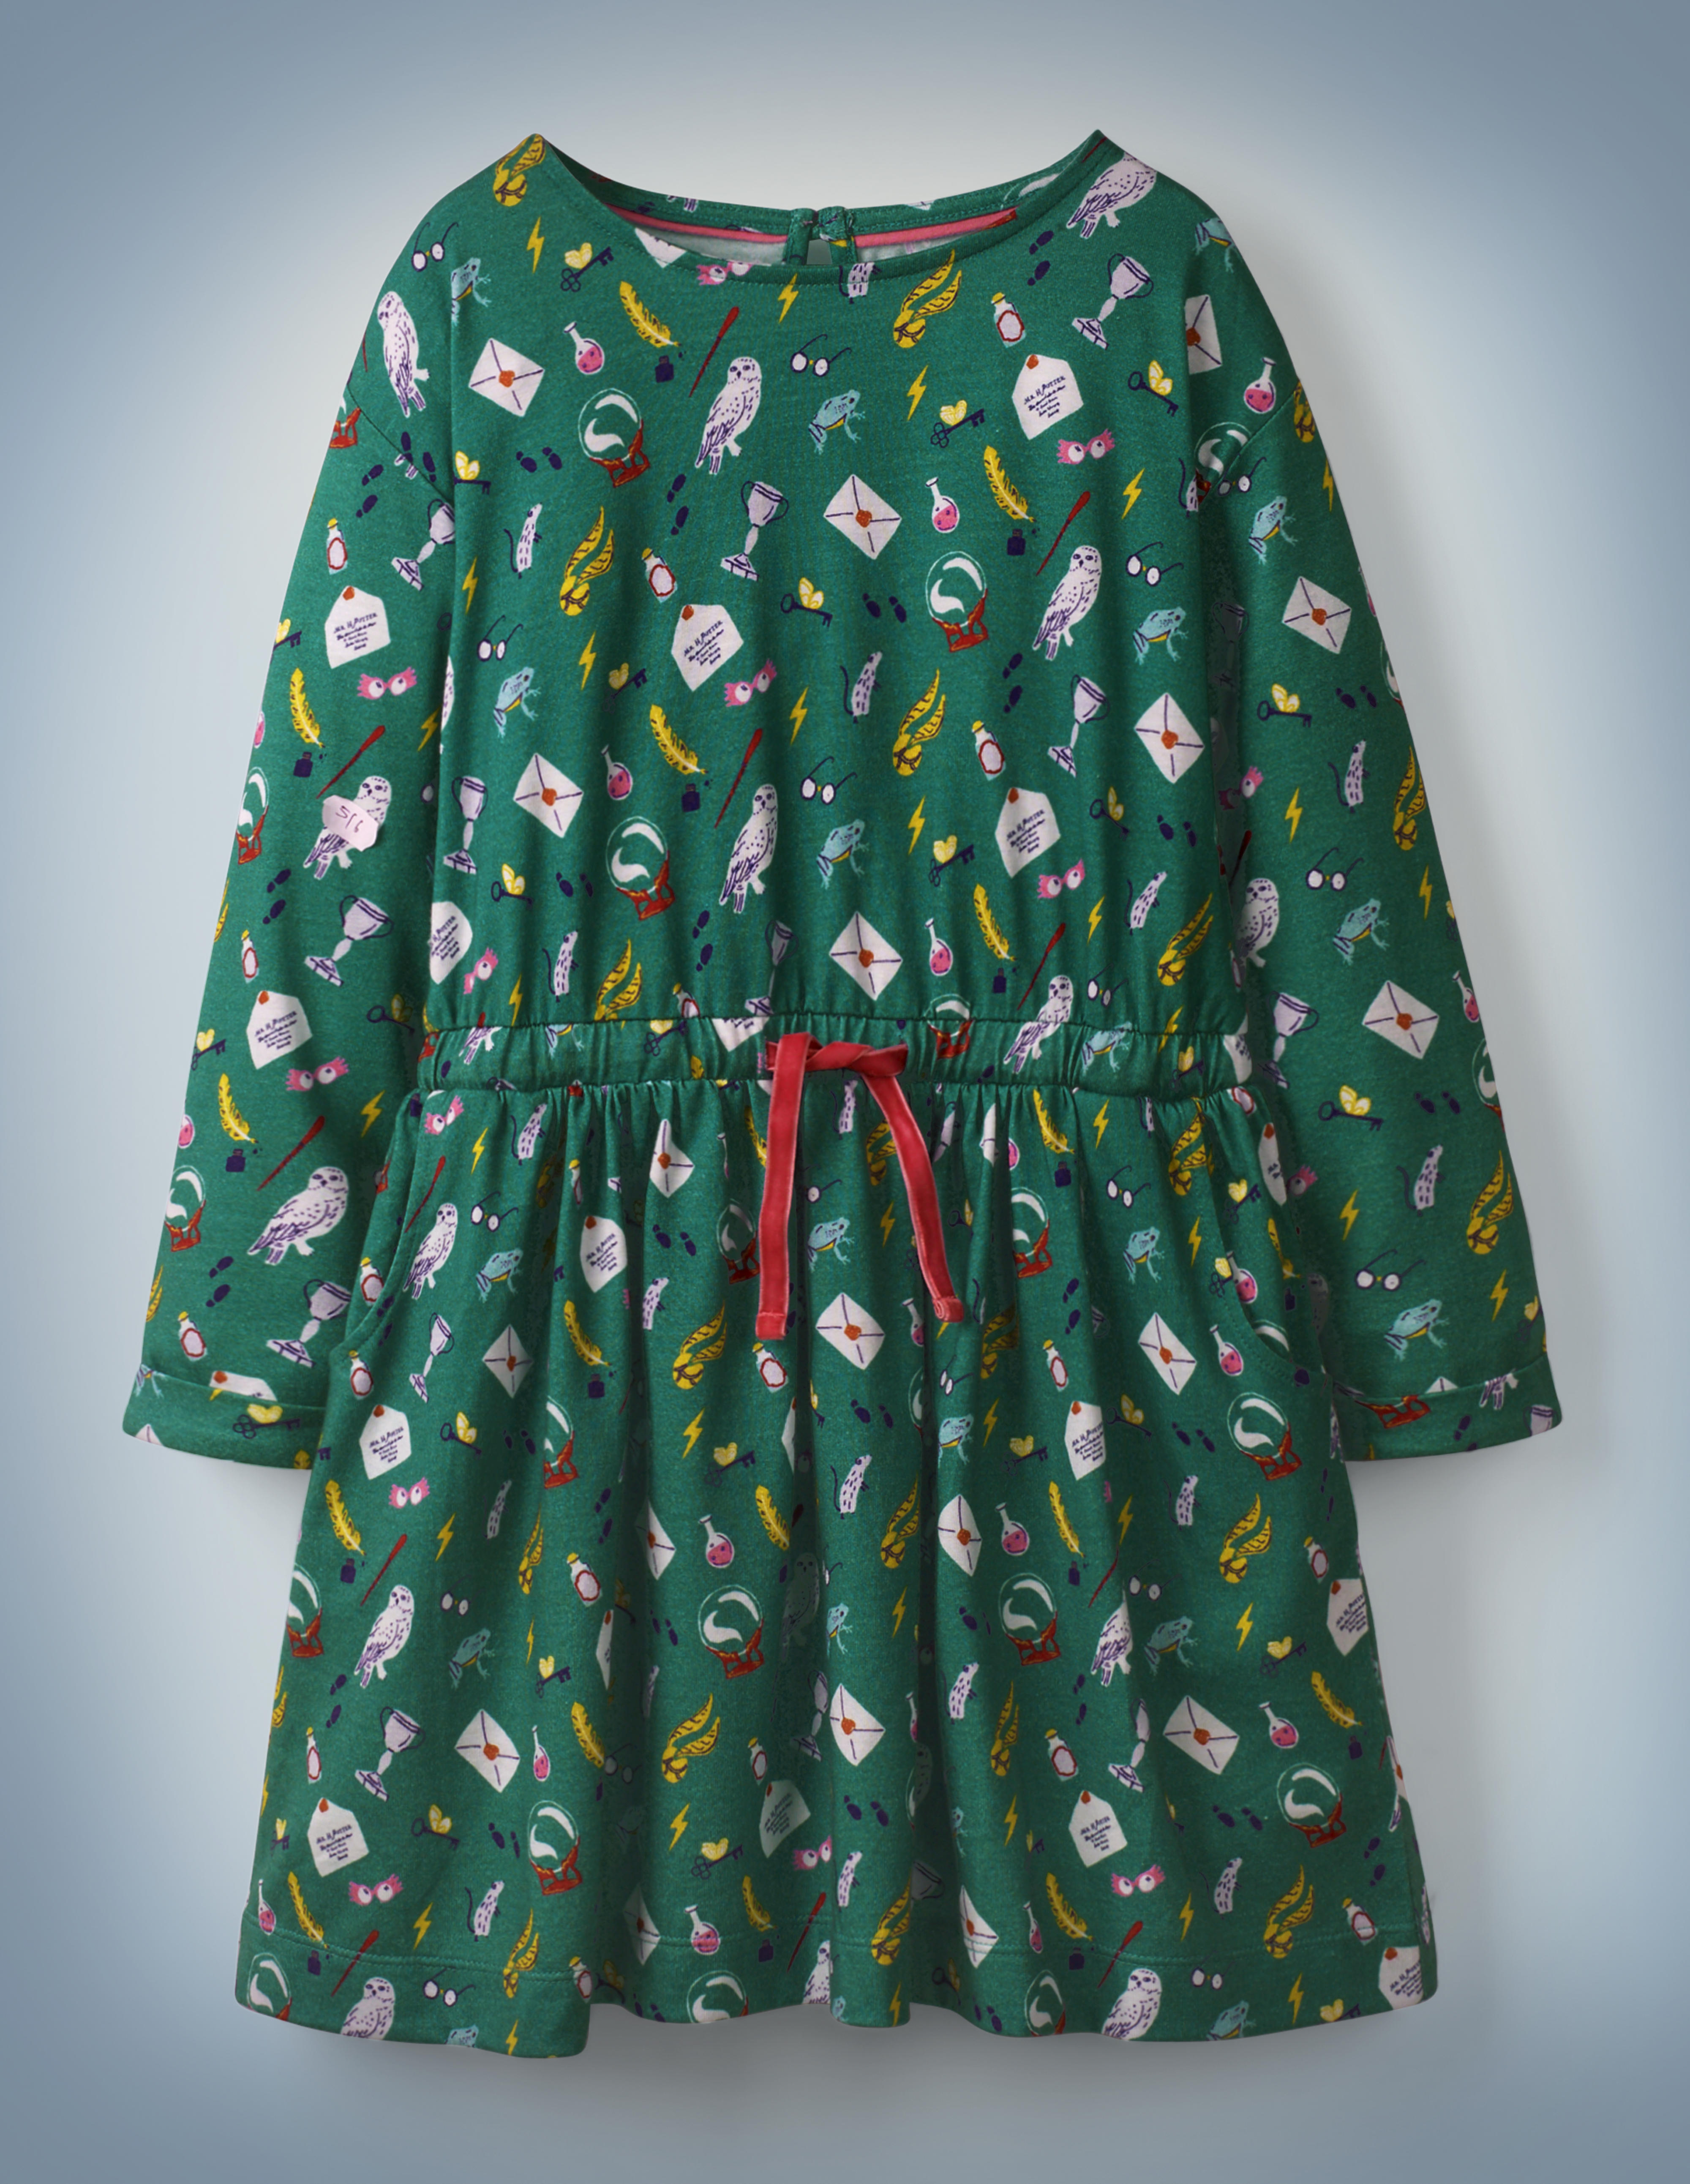 """The Mini Boden Hogwarts Printed Dress in green features an all-over pattern of iconic """"Harry Potter"""" images, including Luna Lovegood's Spectrespecs, Hedwig, and a Hogwarts acceptance letter. The dress features a red drawstring in its center. It retails at £24."""